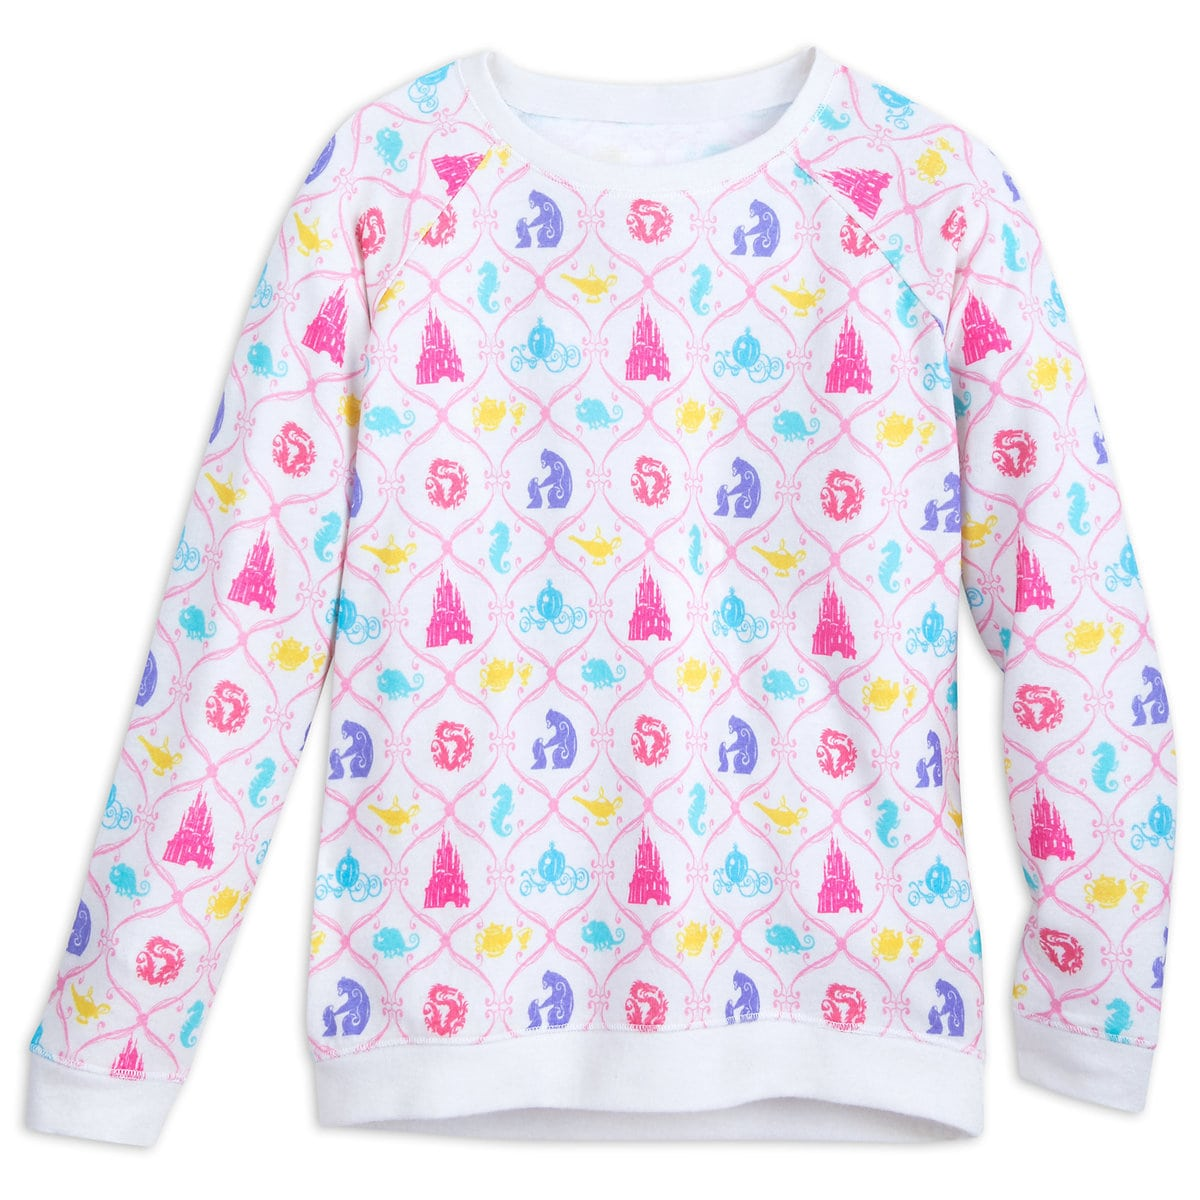 e5367a8d Product Image of Disney Princess Icon Pattern Sweater for Girls # 1